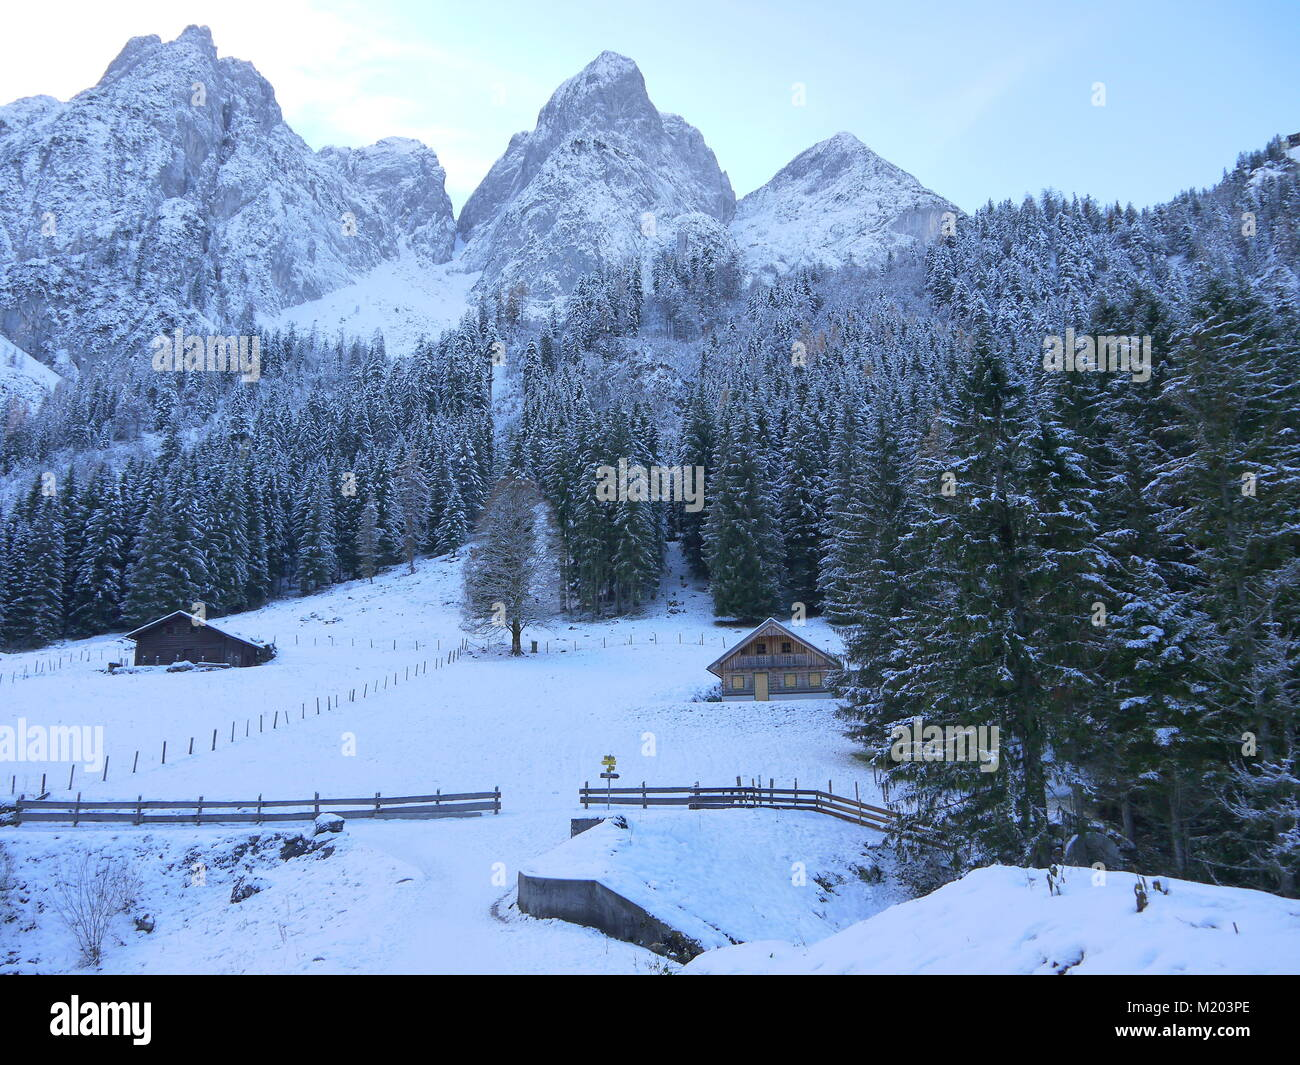 Wonderful winter landscape with view of mountains, forest, little huts and park bench covered in fresh snow in Austria - Stock Image